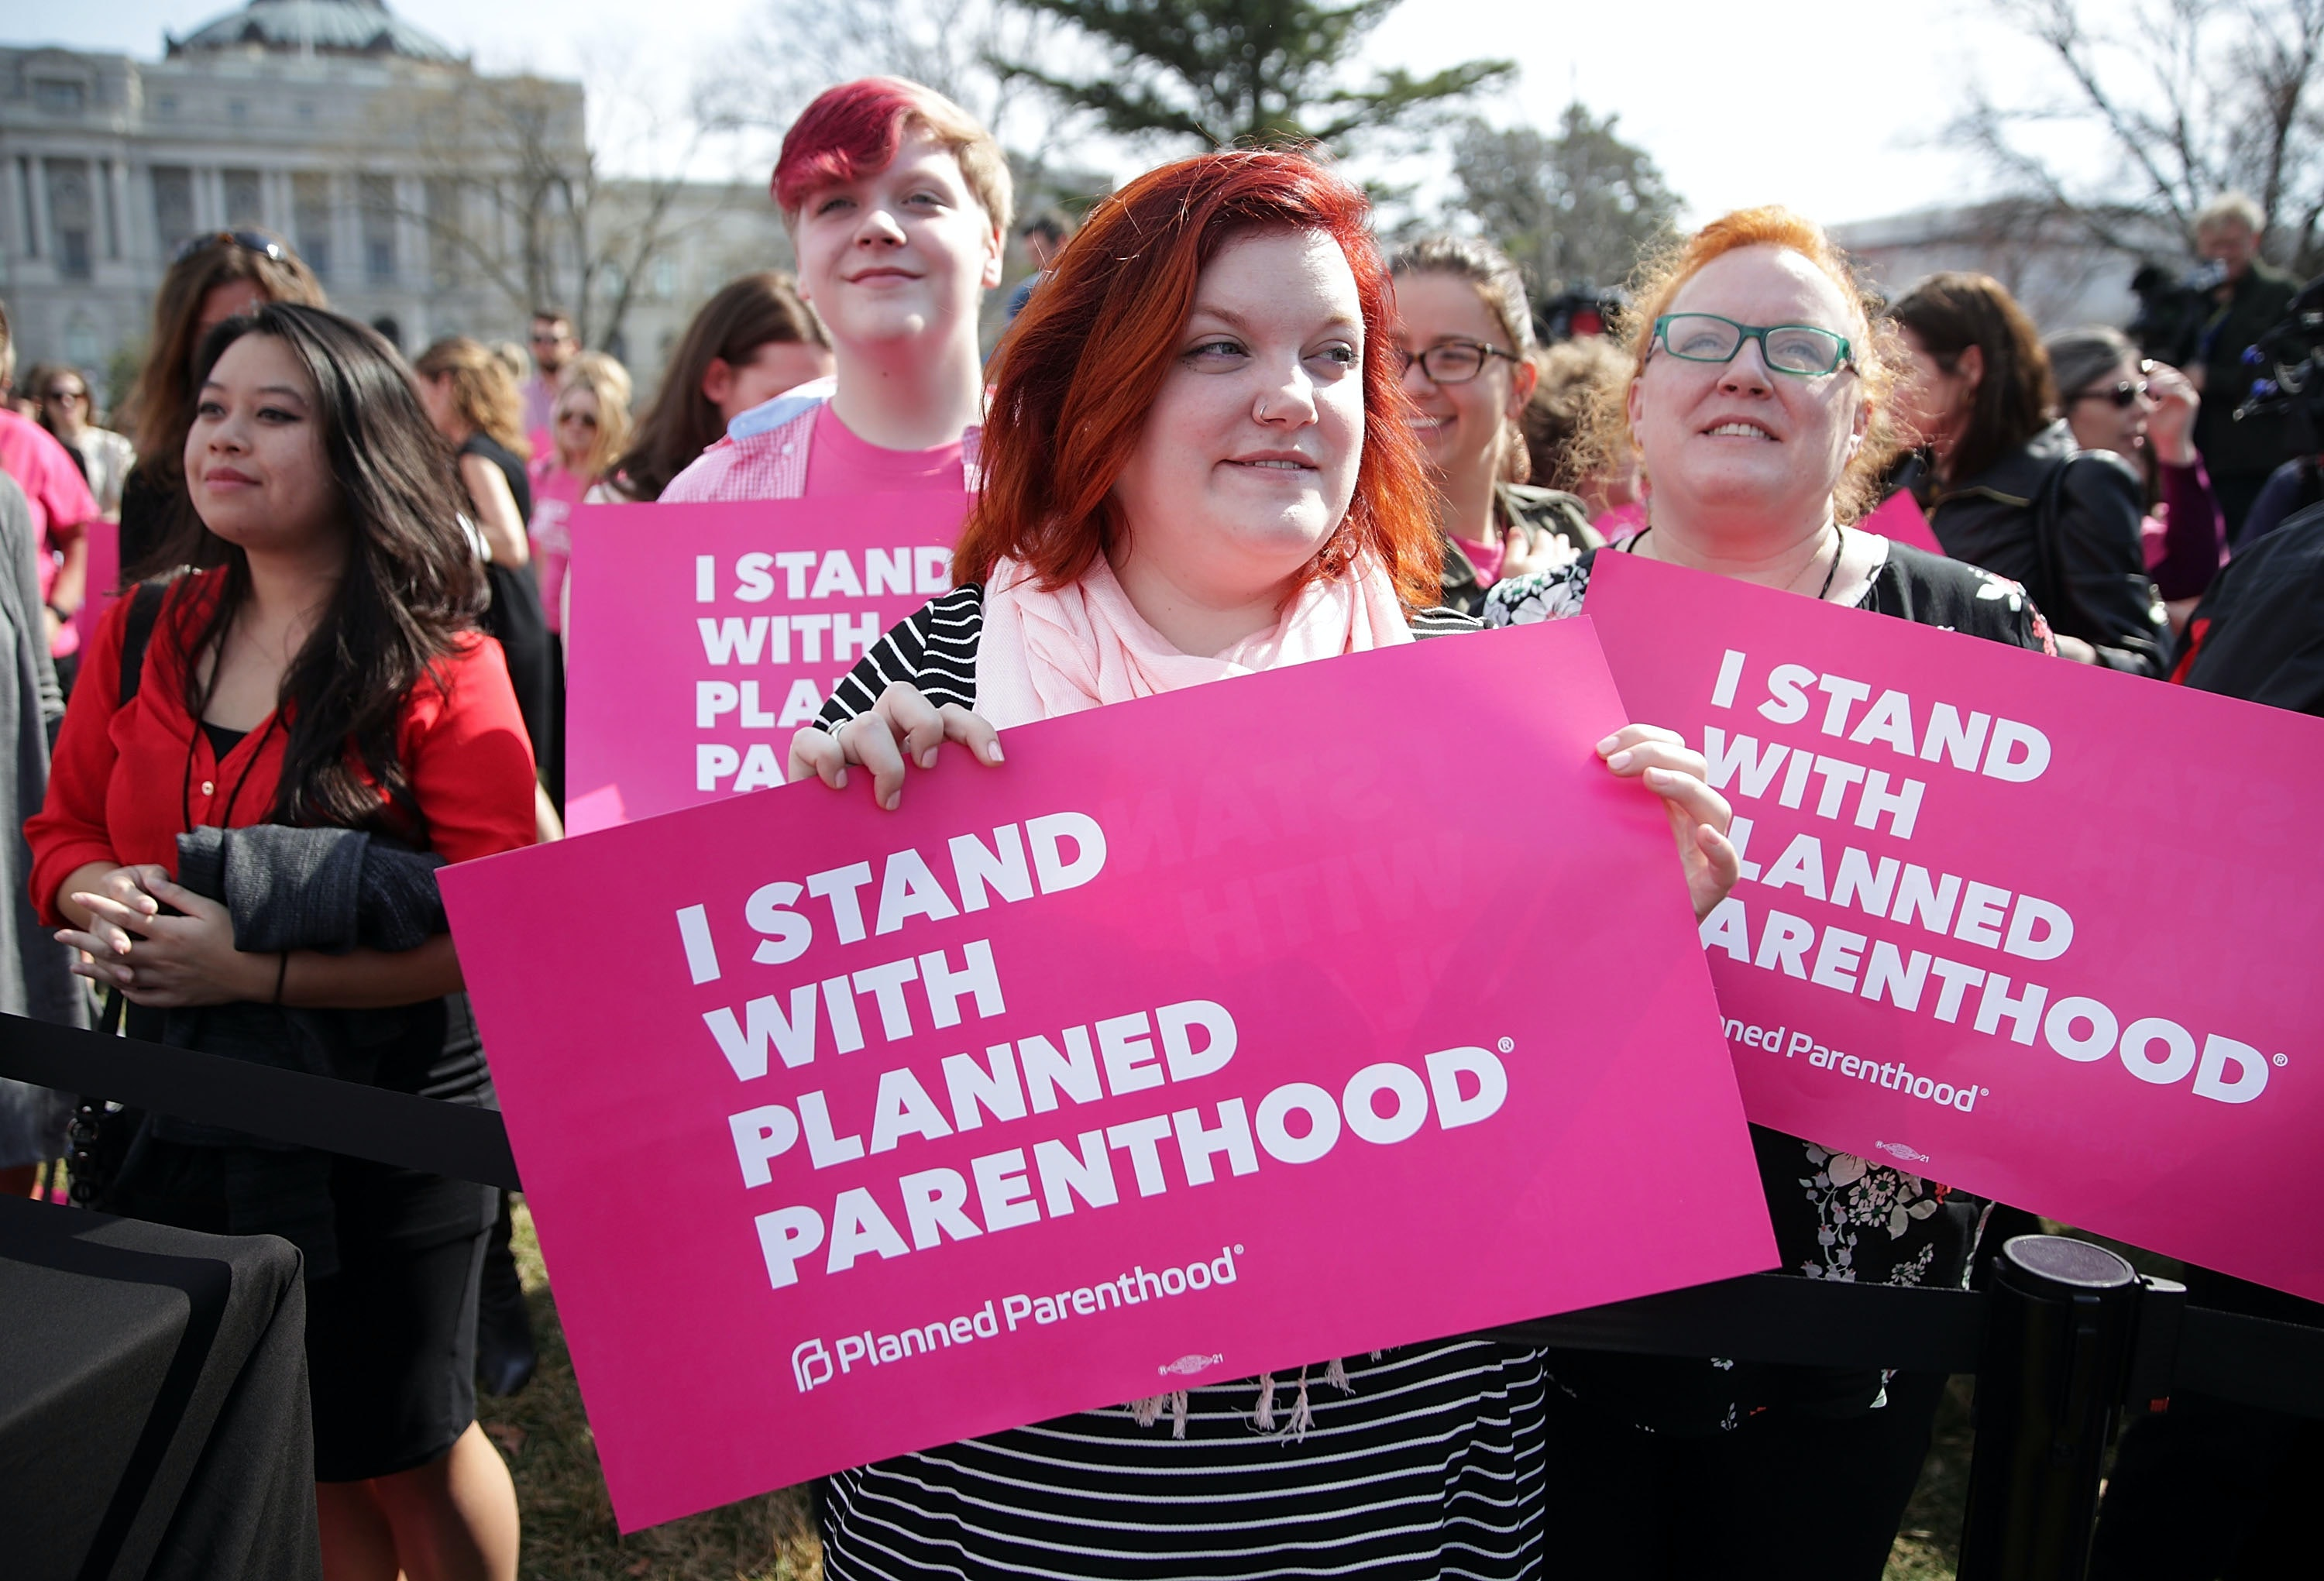 Female pastors in Iowa sign letter expressing support for Planned Parenthood